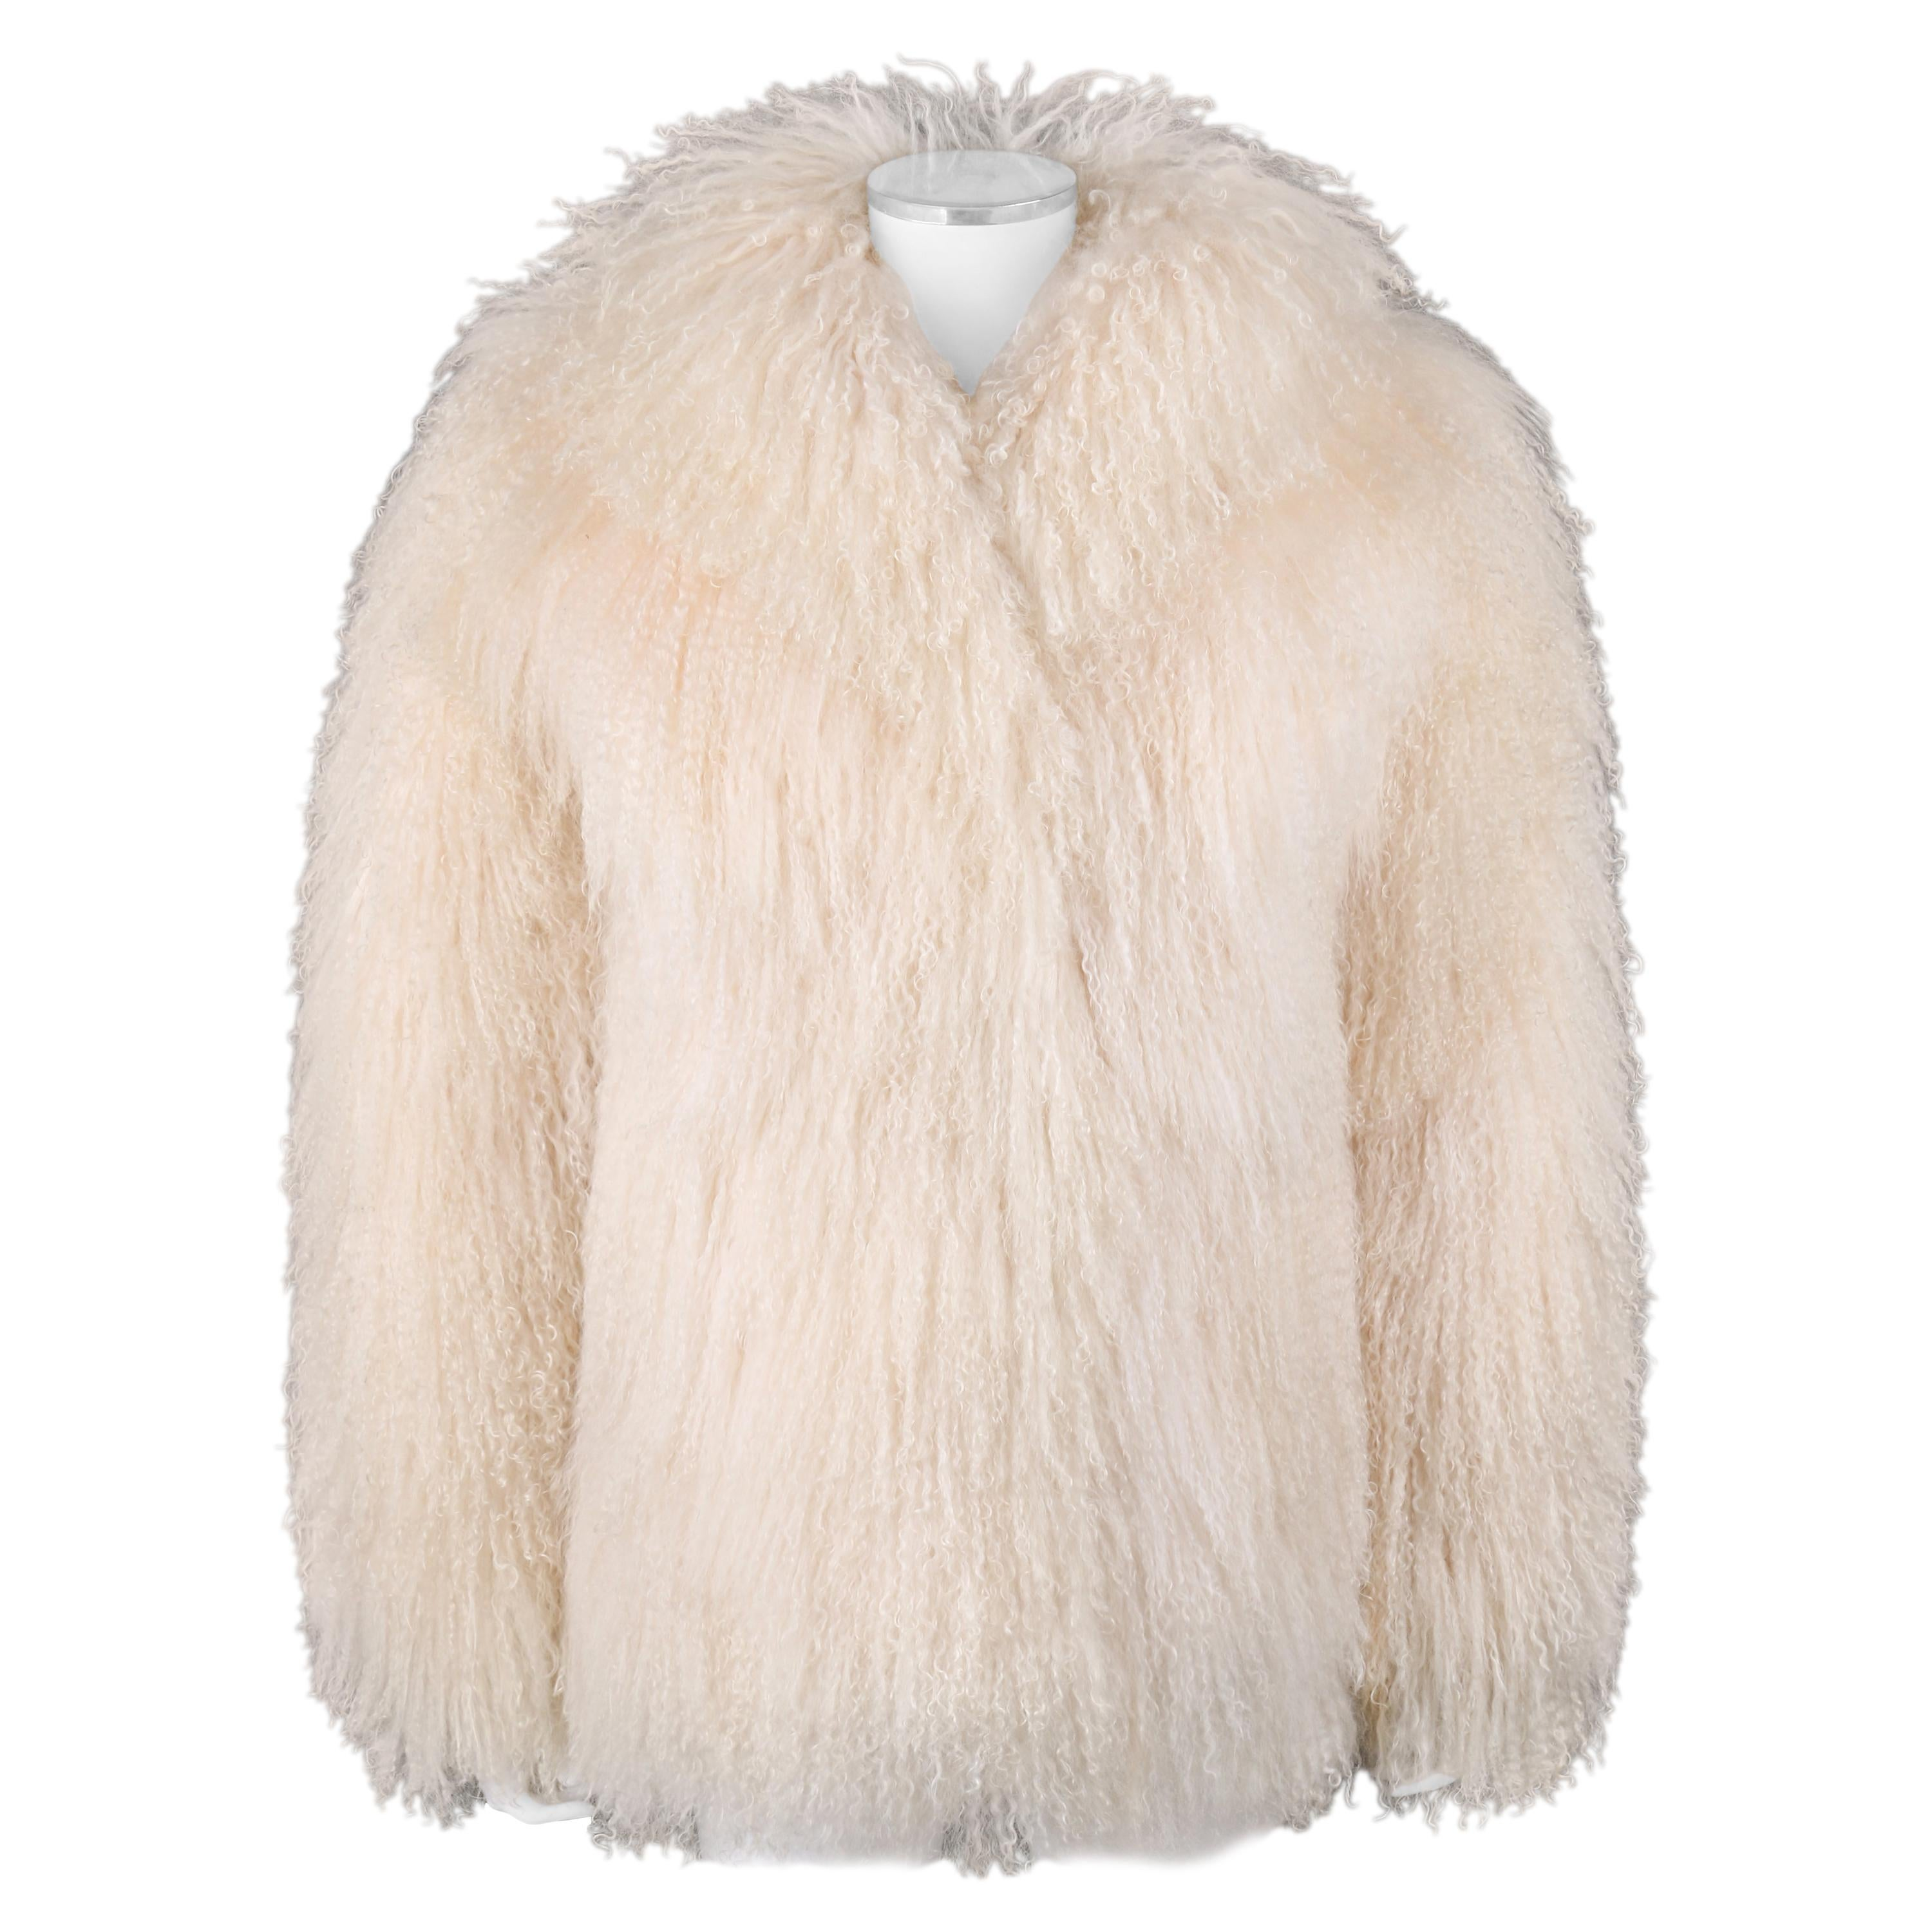 e8824a453a32b SAFURON Cream Curly Mongolian Lamb Fur Coat Jacket For Sale at 1stdibs